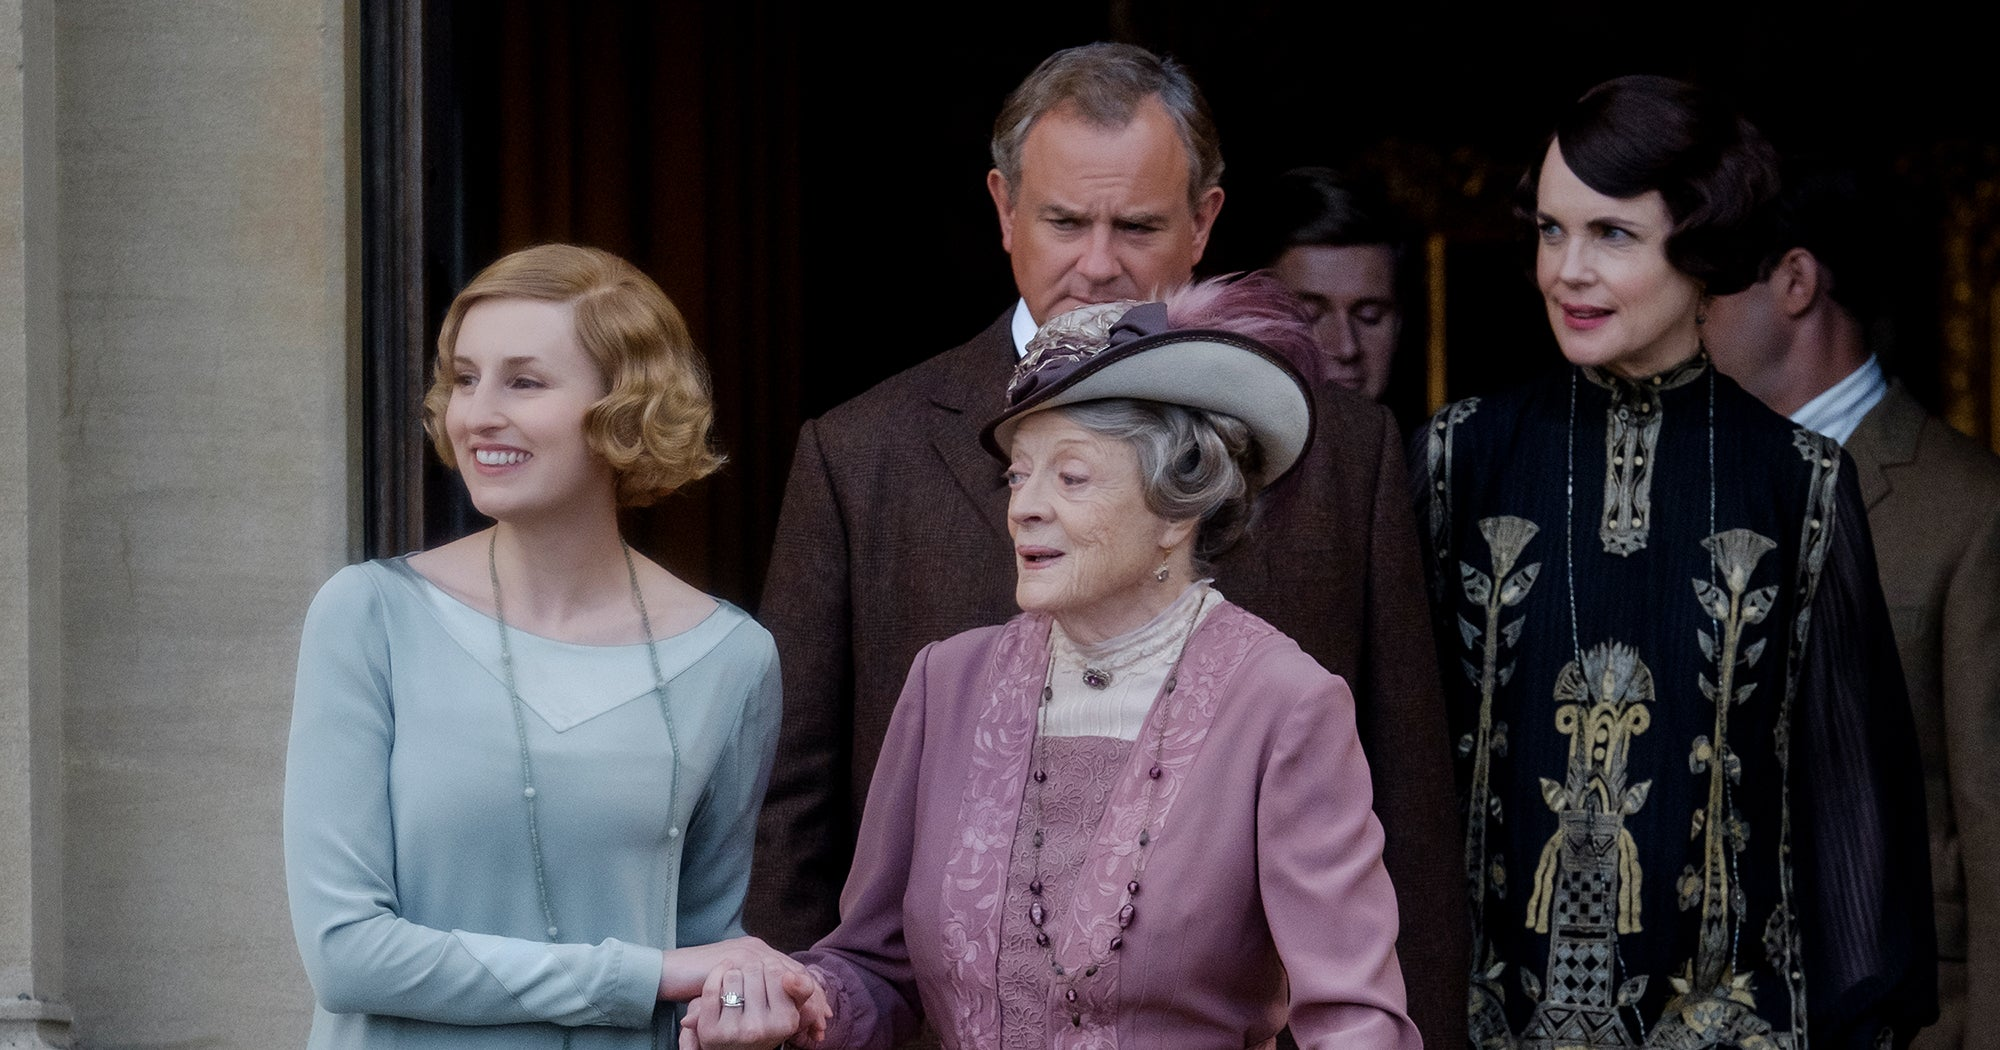 The Downton Abbey Movie Proves This Was Always A Story About Women